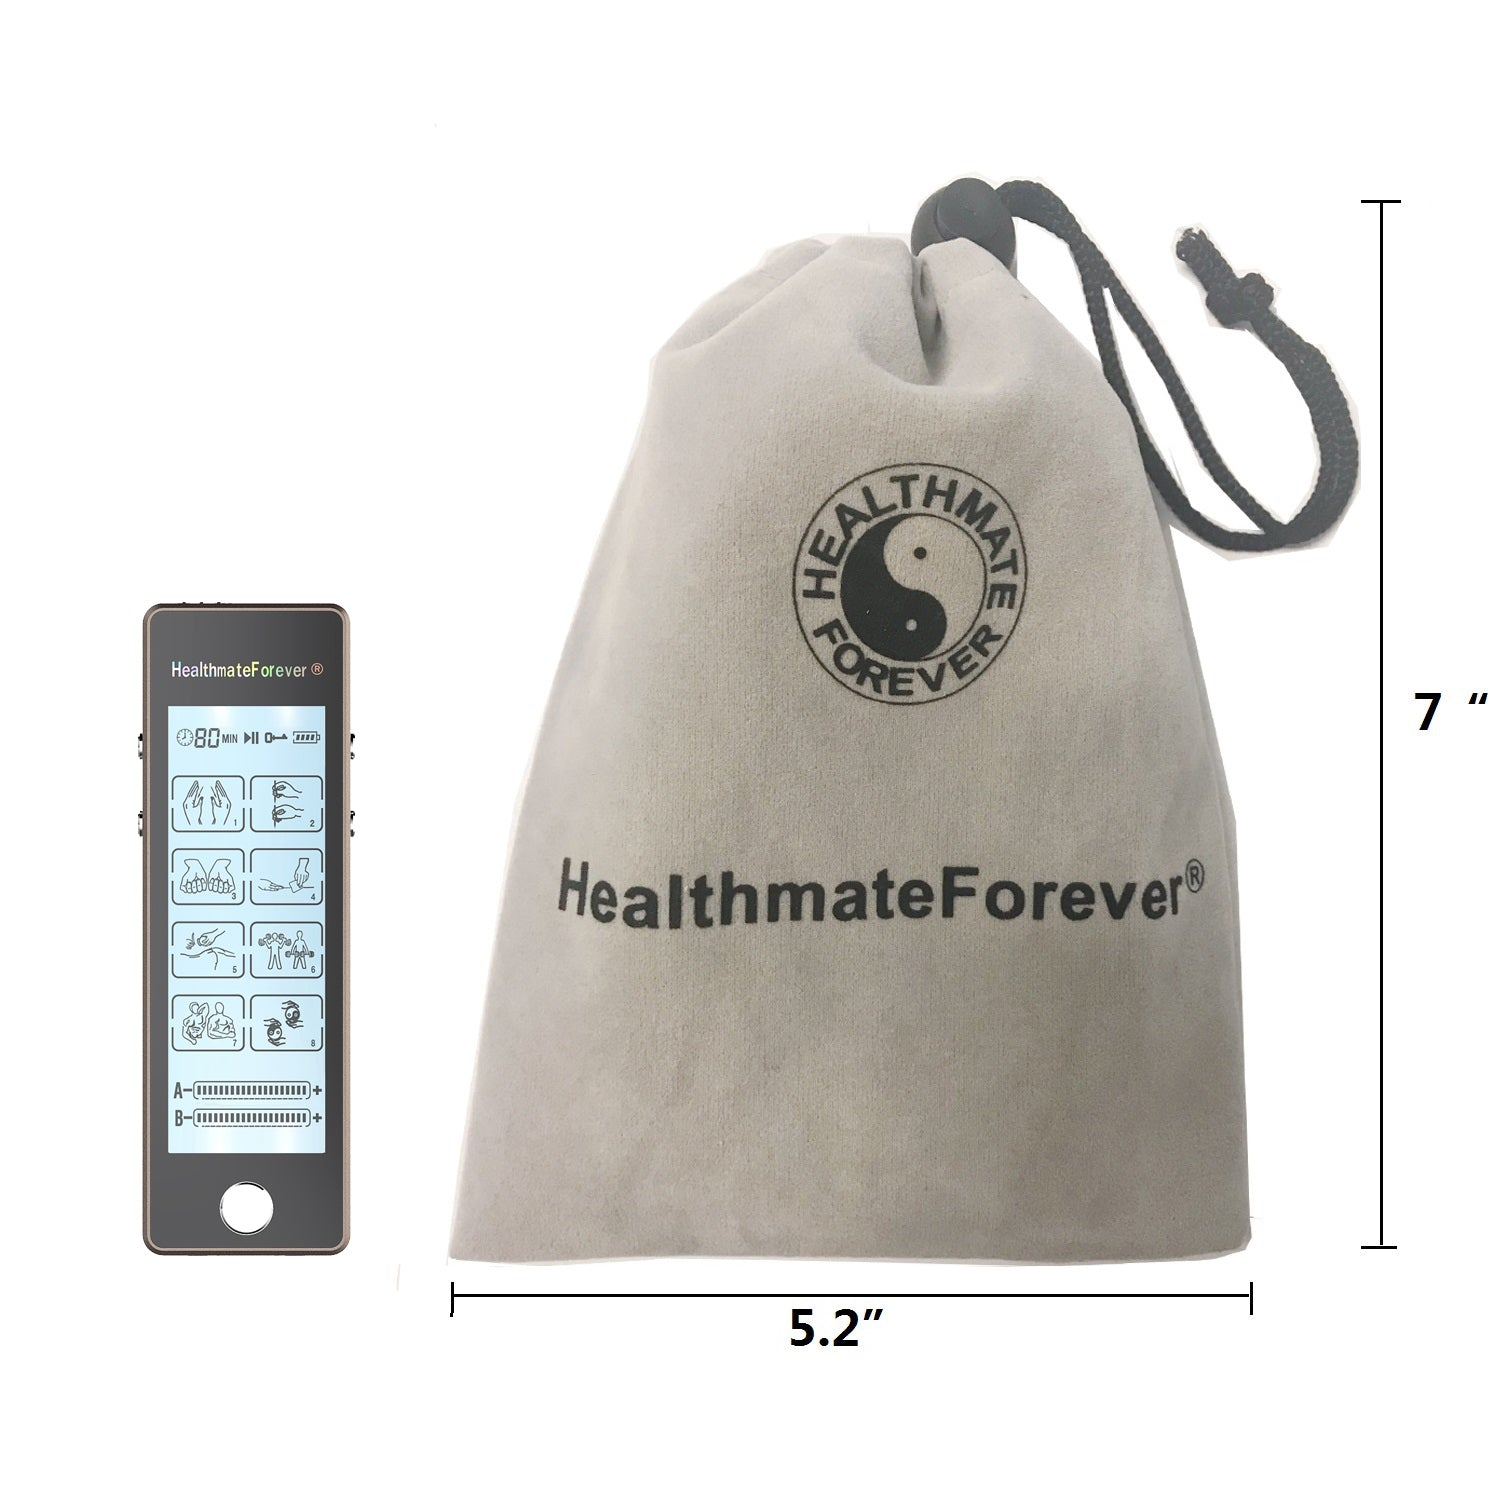 Touch Screen TS8ABV TENS Unit & Muscle Stimulator for Pain Management Sports Injury Recovery - HealthmateForever